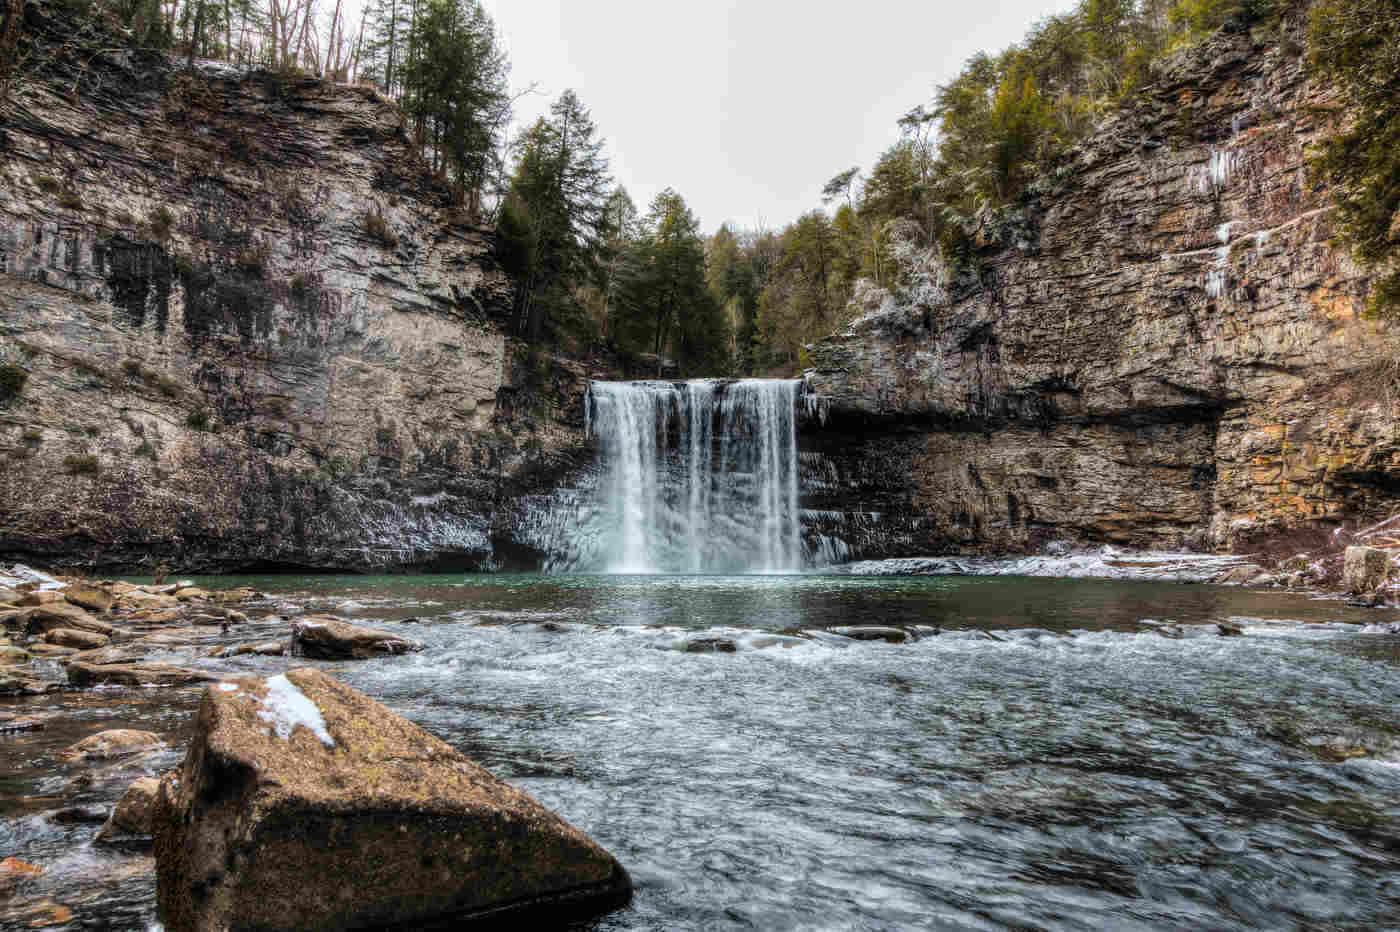 fall creek falls state park - 11 best state parks in the united states